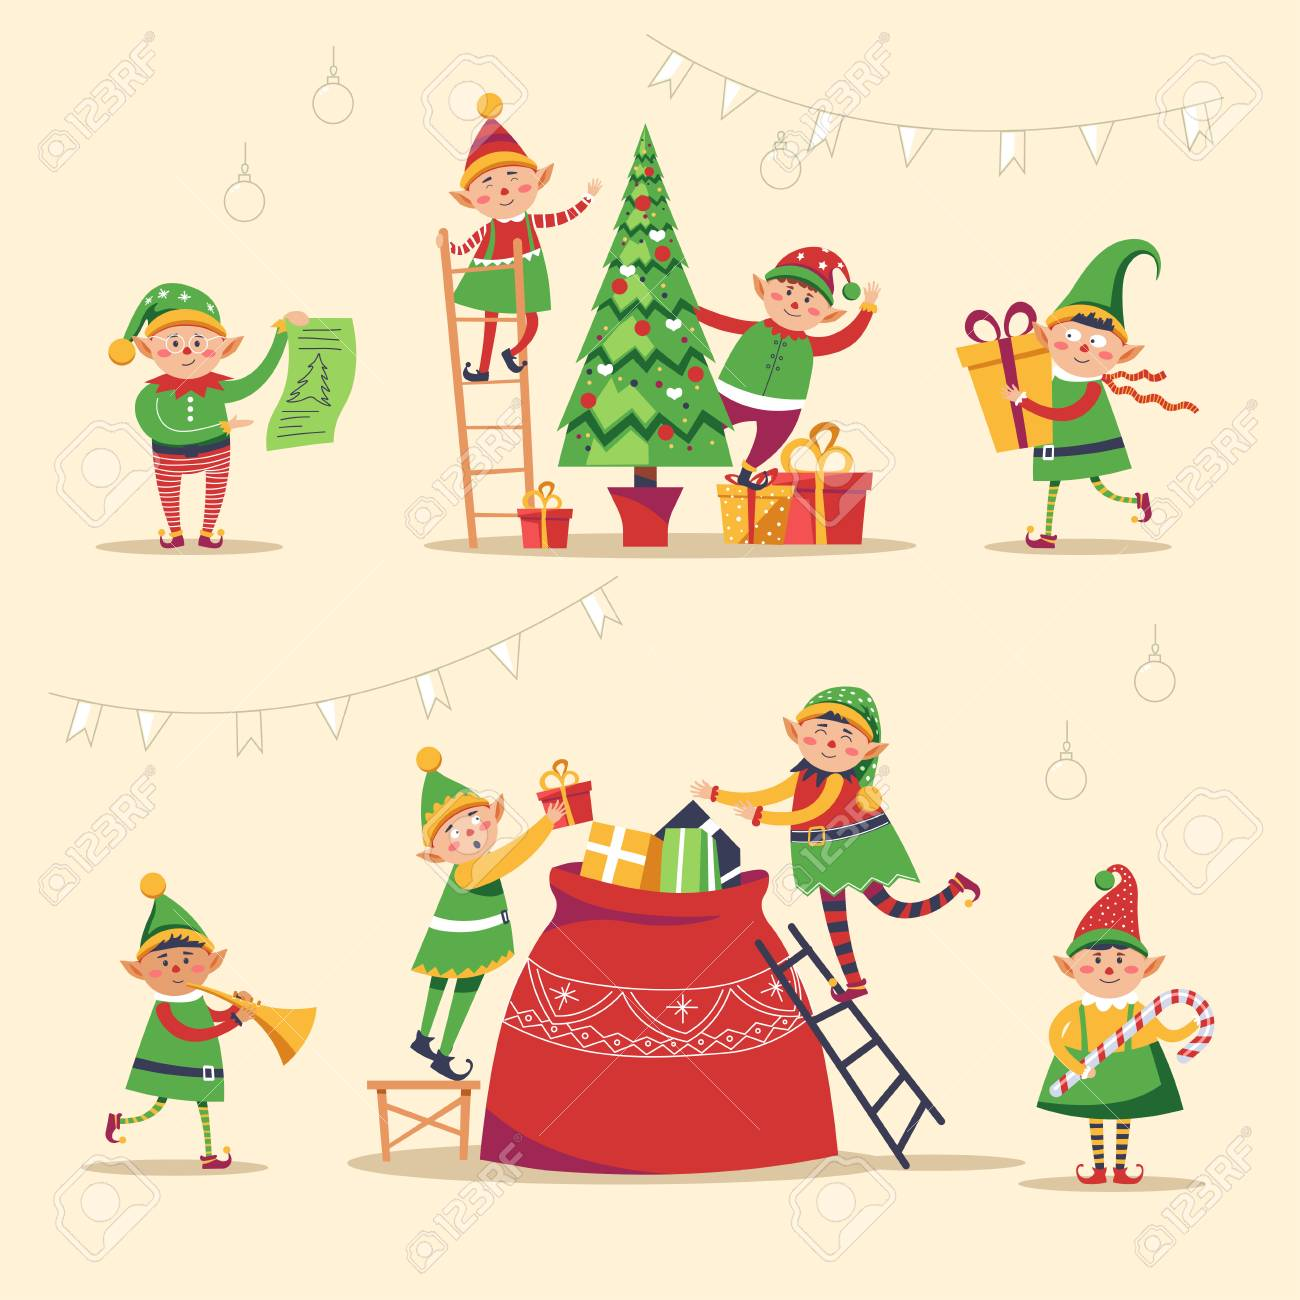 Getting Ready for Christmas Clip Art